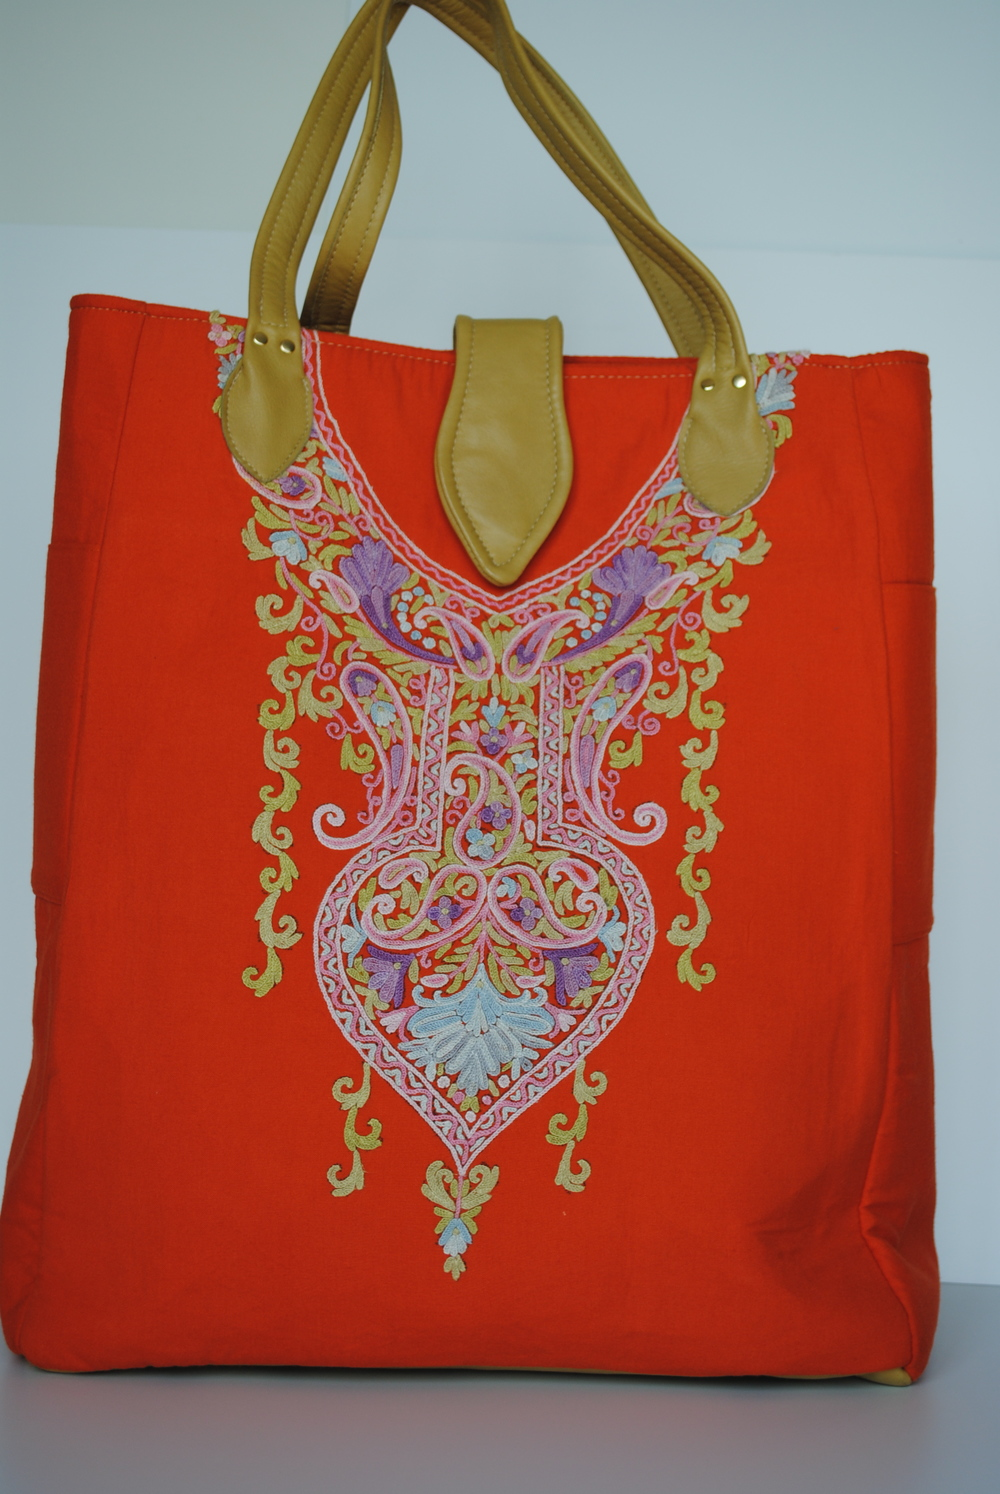 Shalimar Royal Garden Shopper